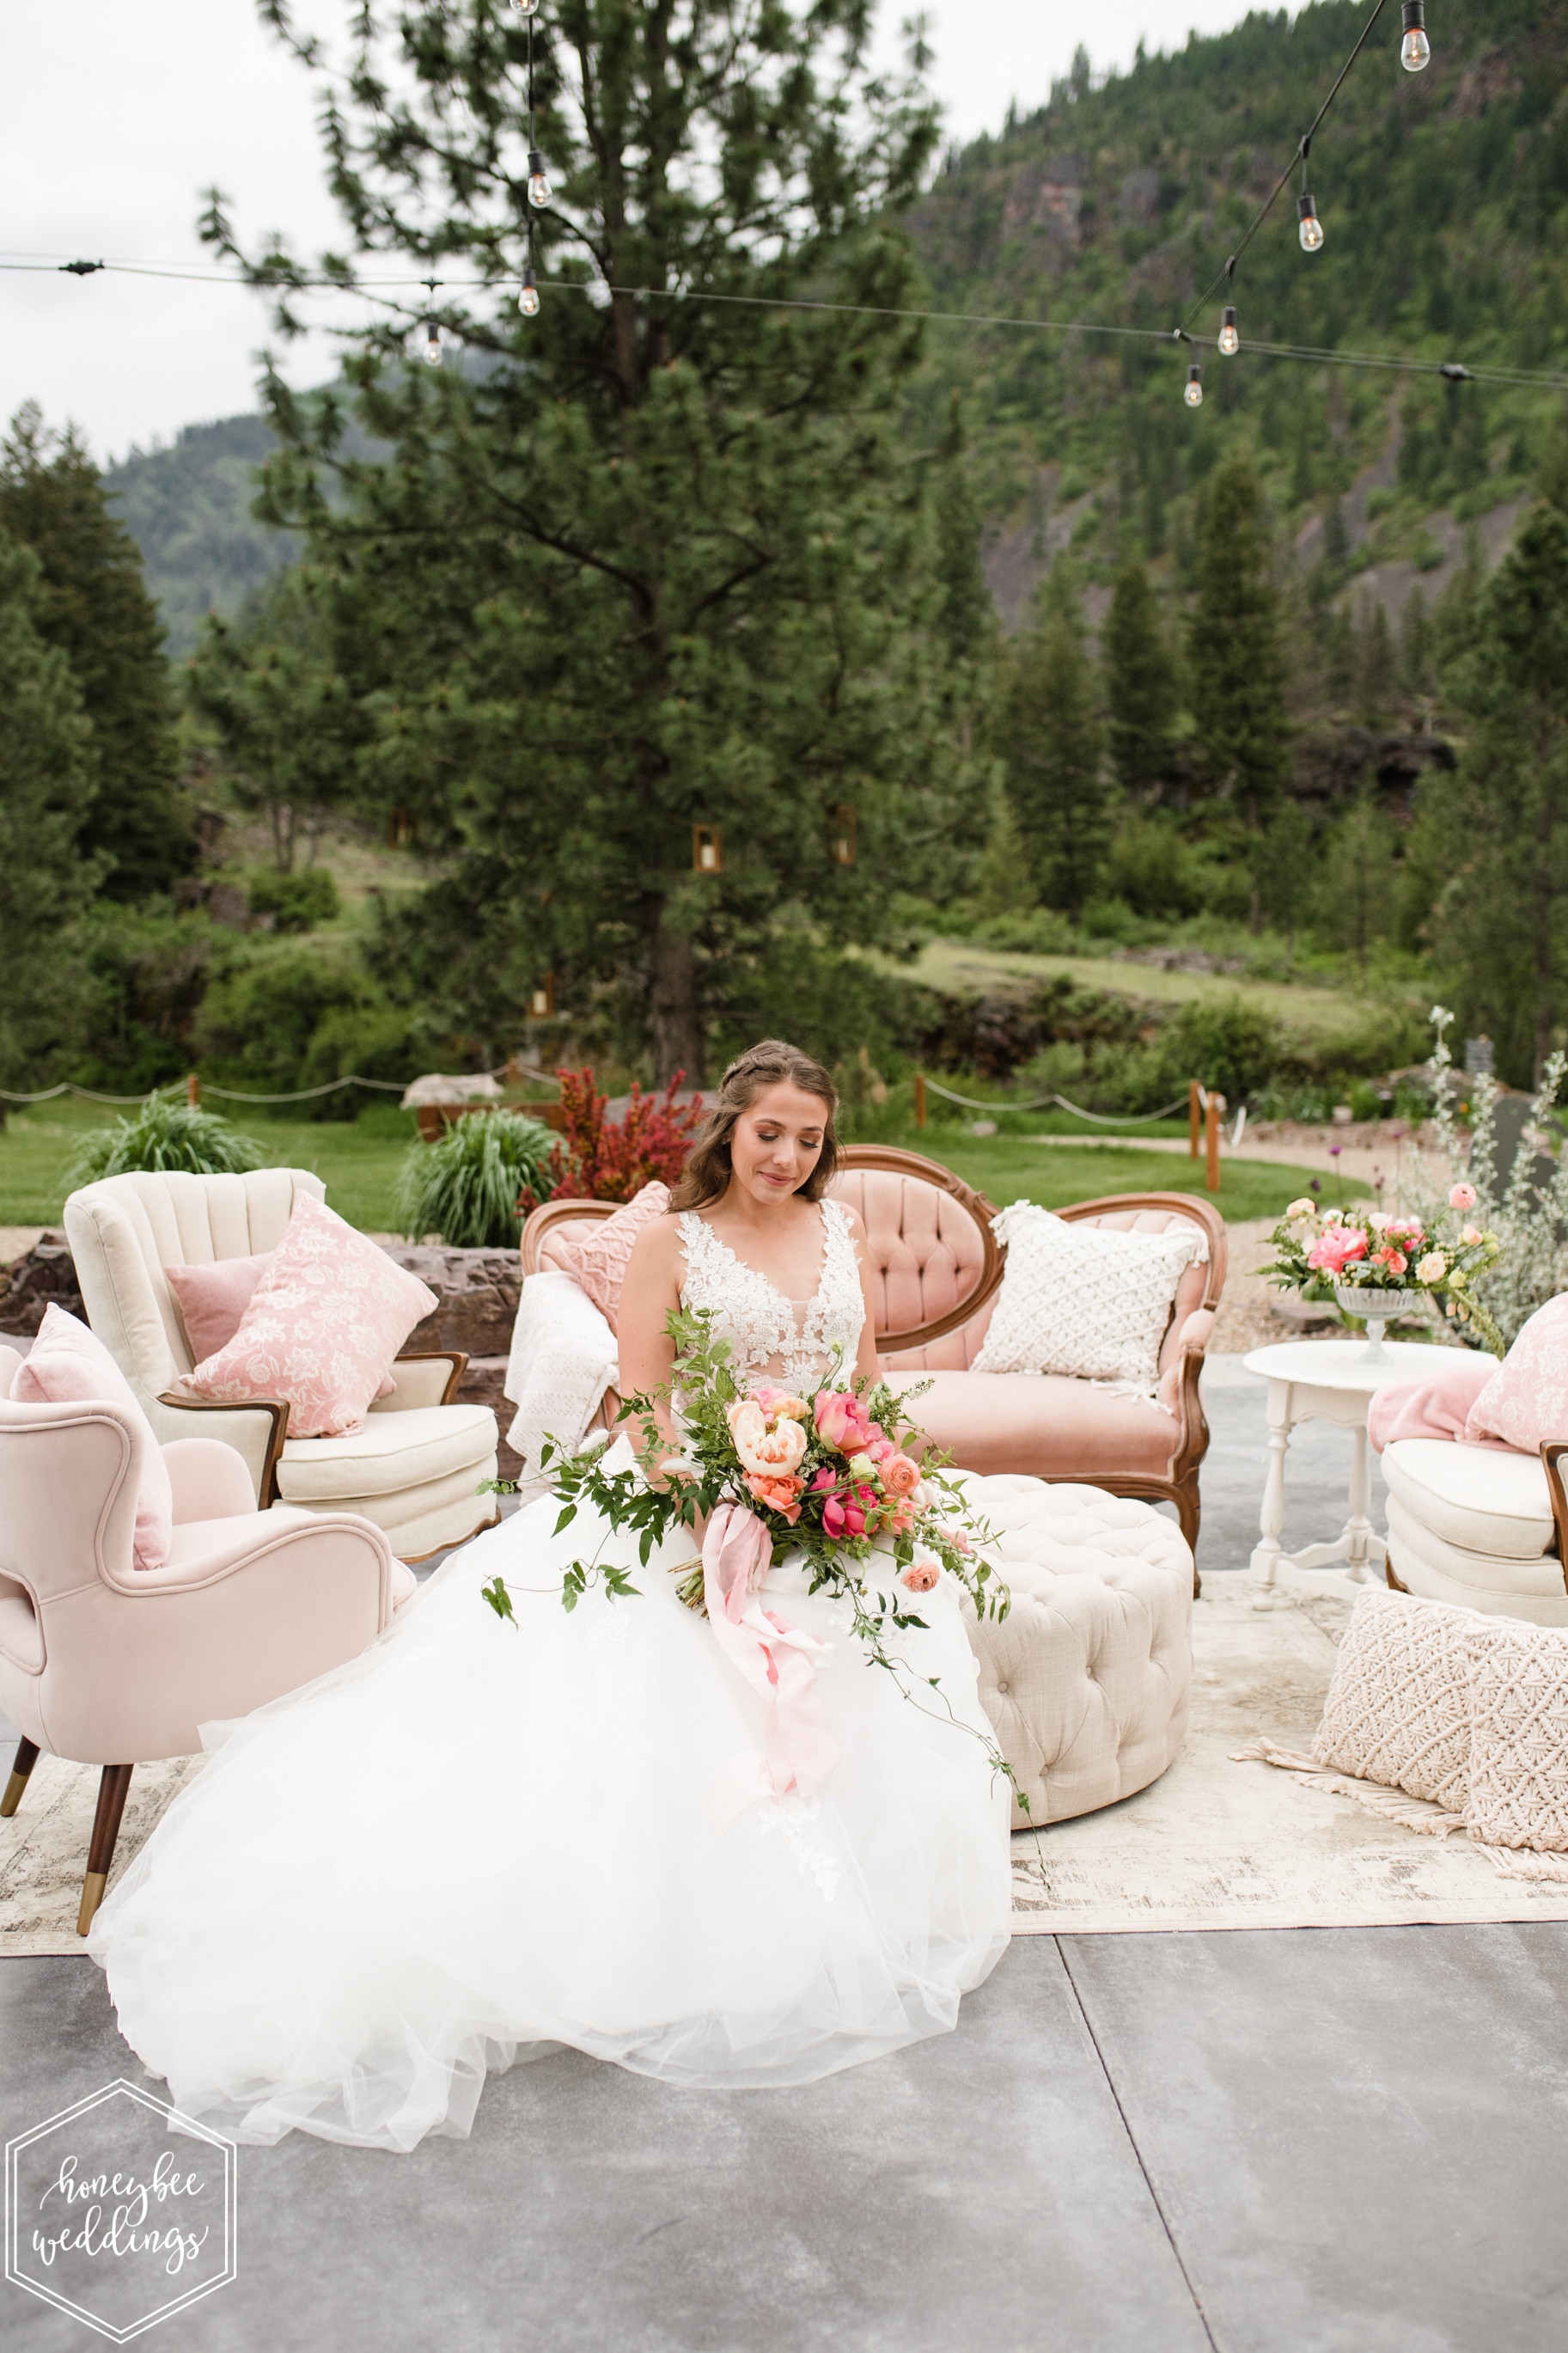 095Coral Mountain Wedding at White Raven_Honeybee Weddings_May 23, 2019-257.jpg